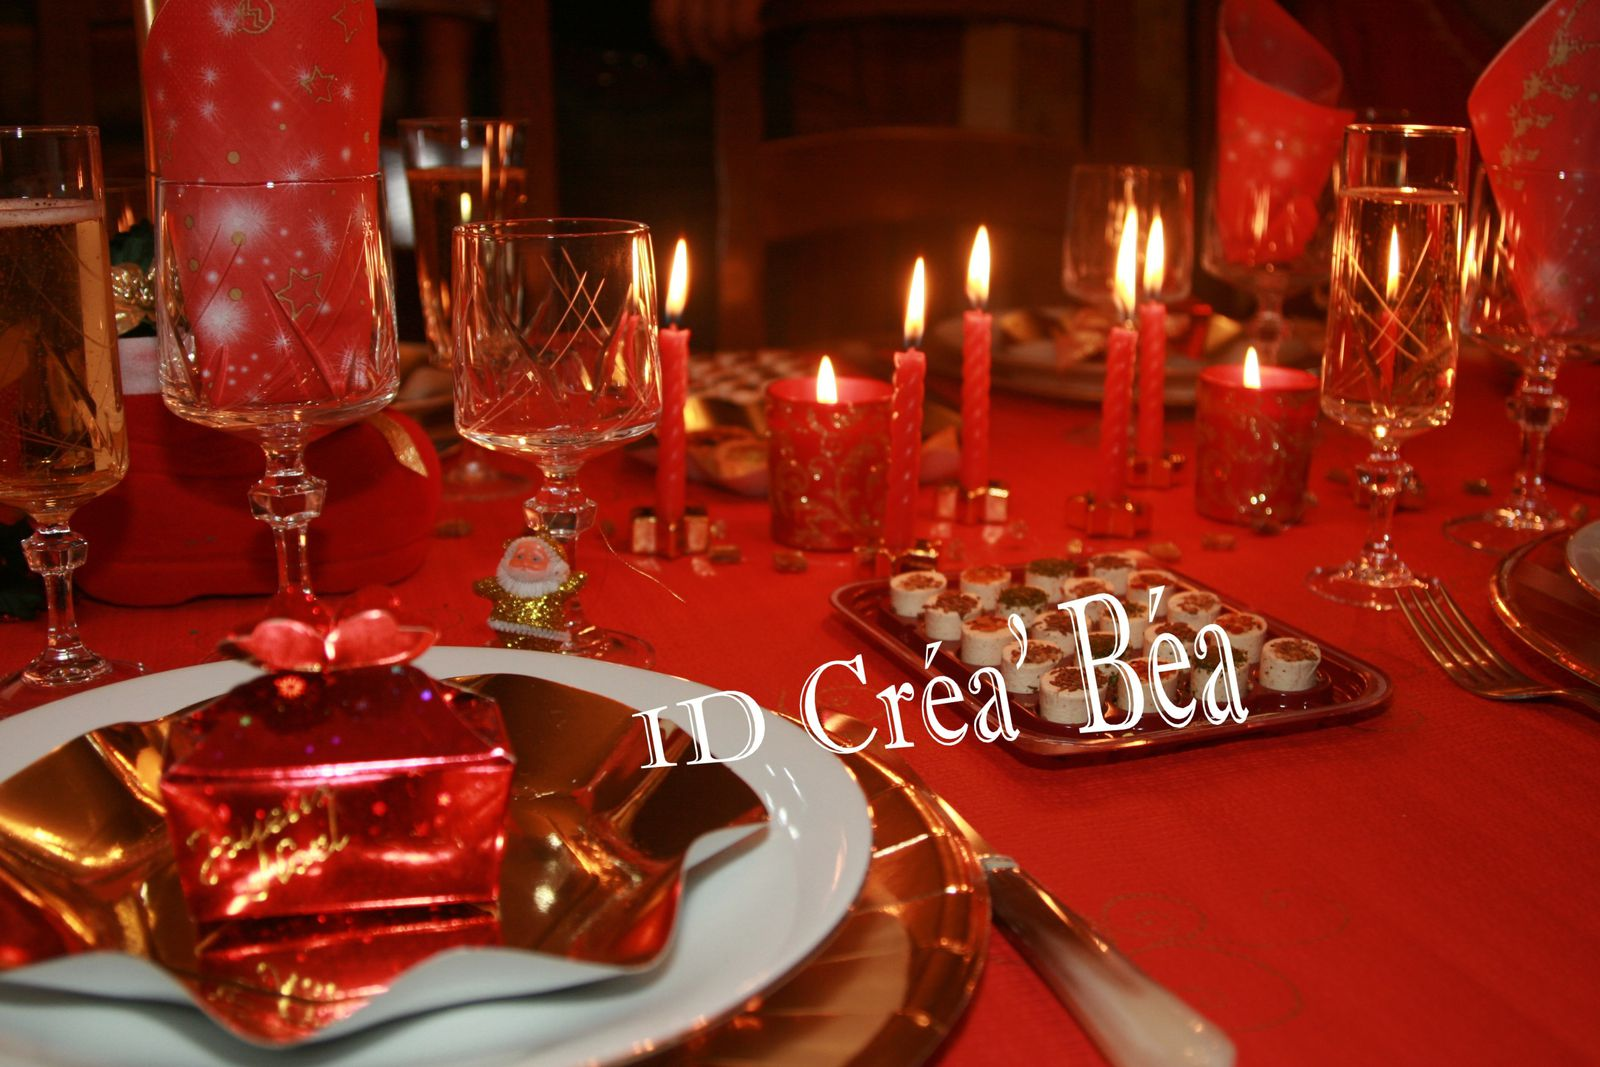 Decoration table de noel rouge et or maison design for Decoration table de noel rouge et blanc